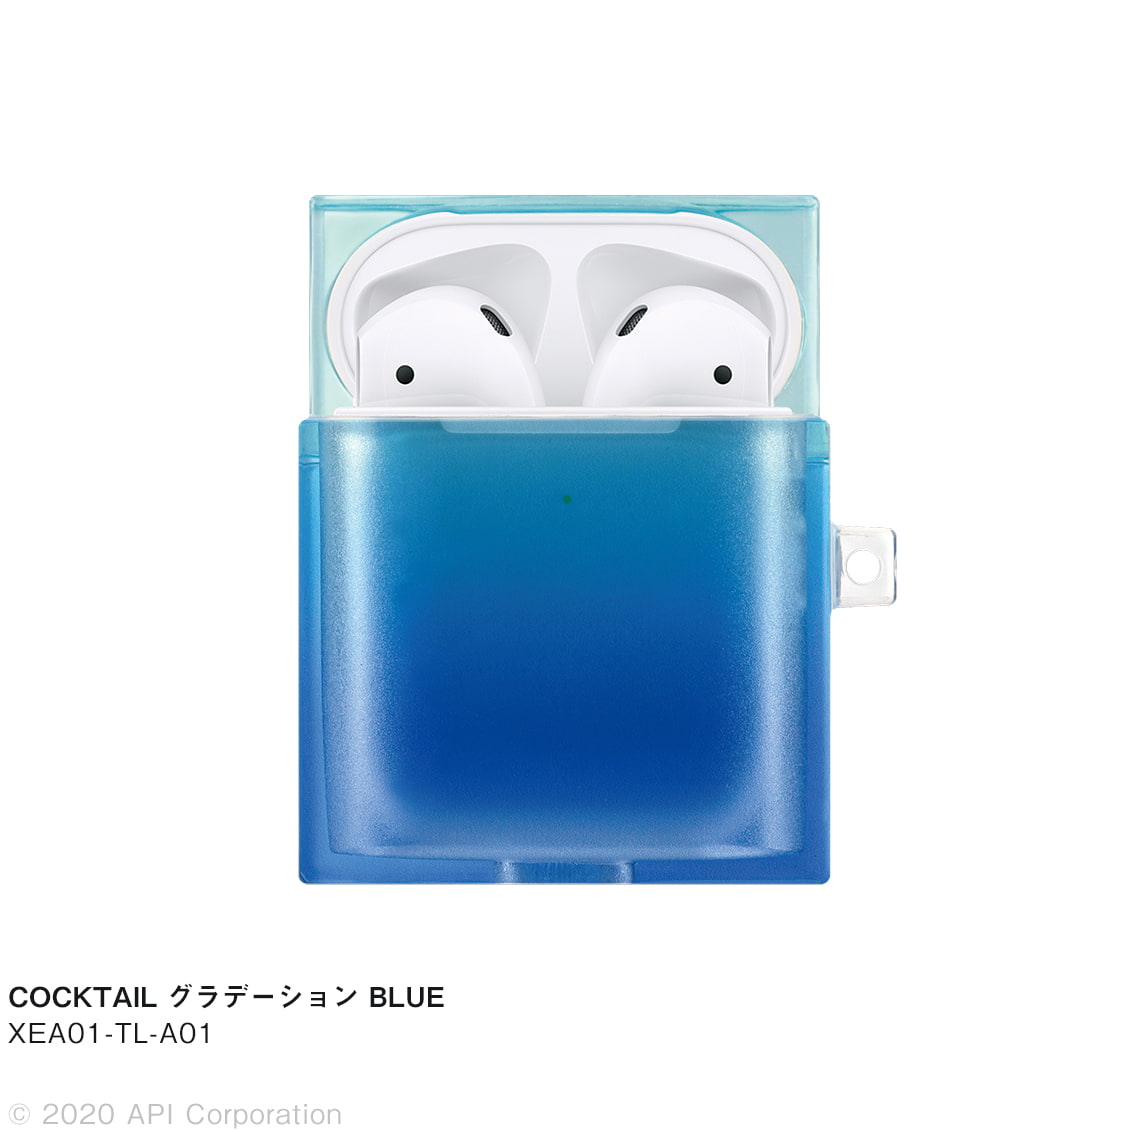 AirPods 2 /1ケース  TILE スクエア型  [COCKTAIL]